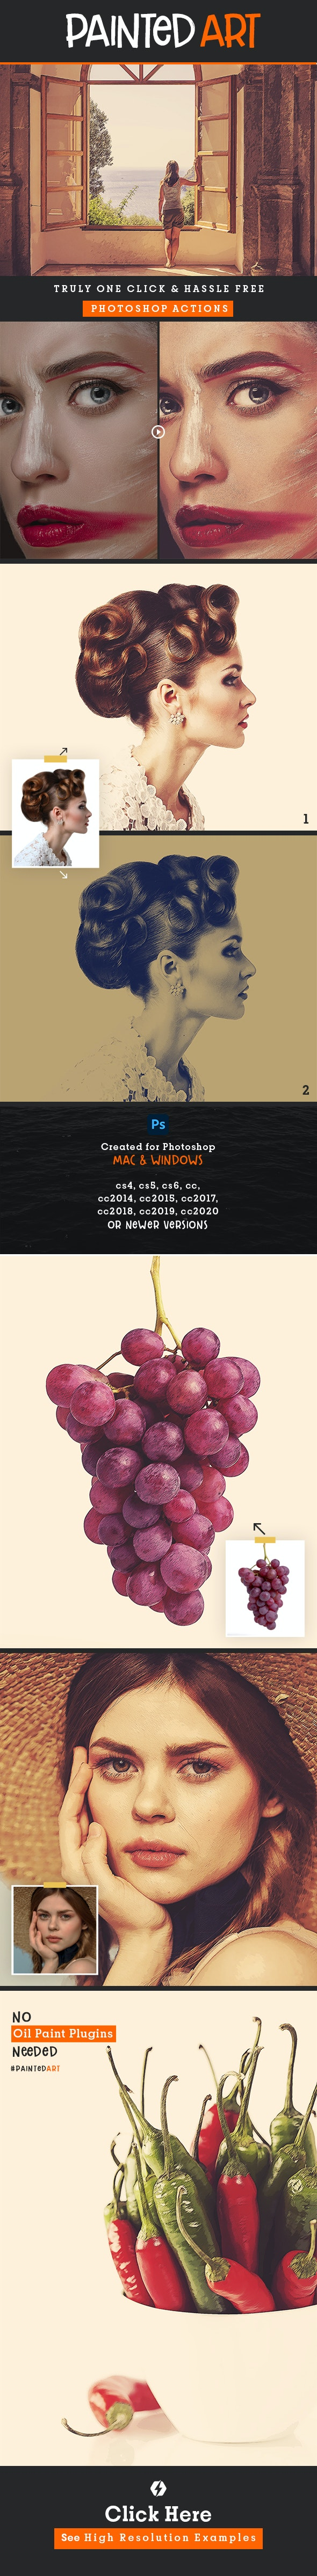 Realistic Painting - Artistic Photoshop Actions - Photo Effects Actions